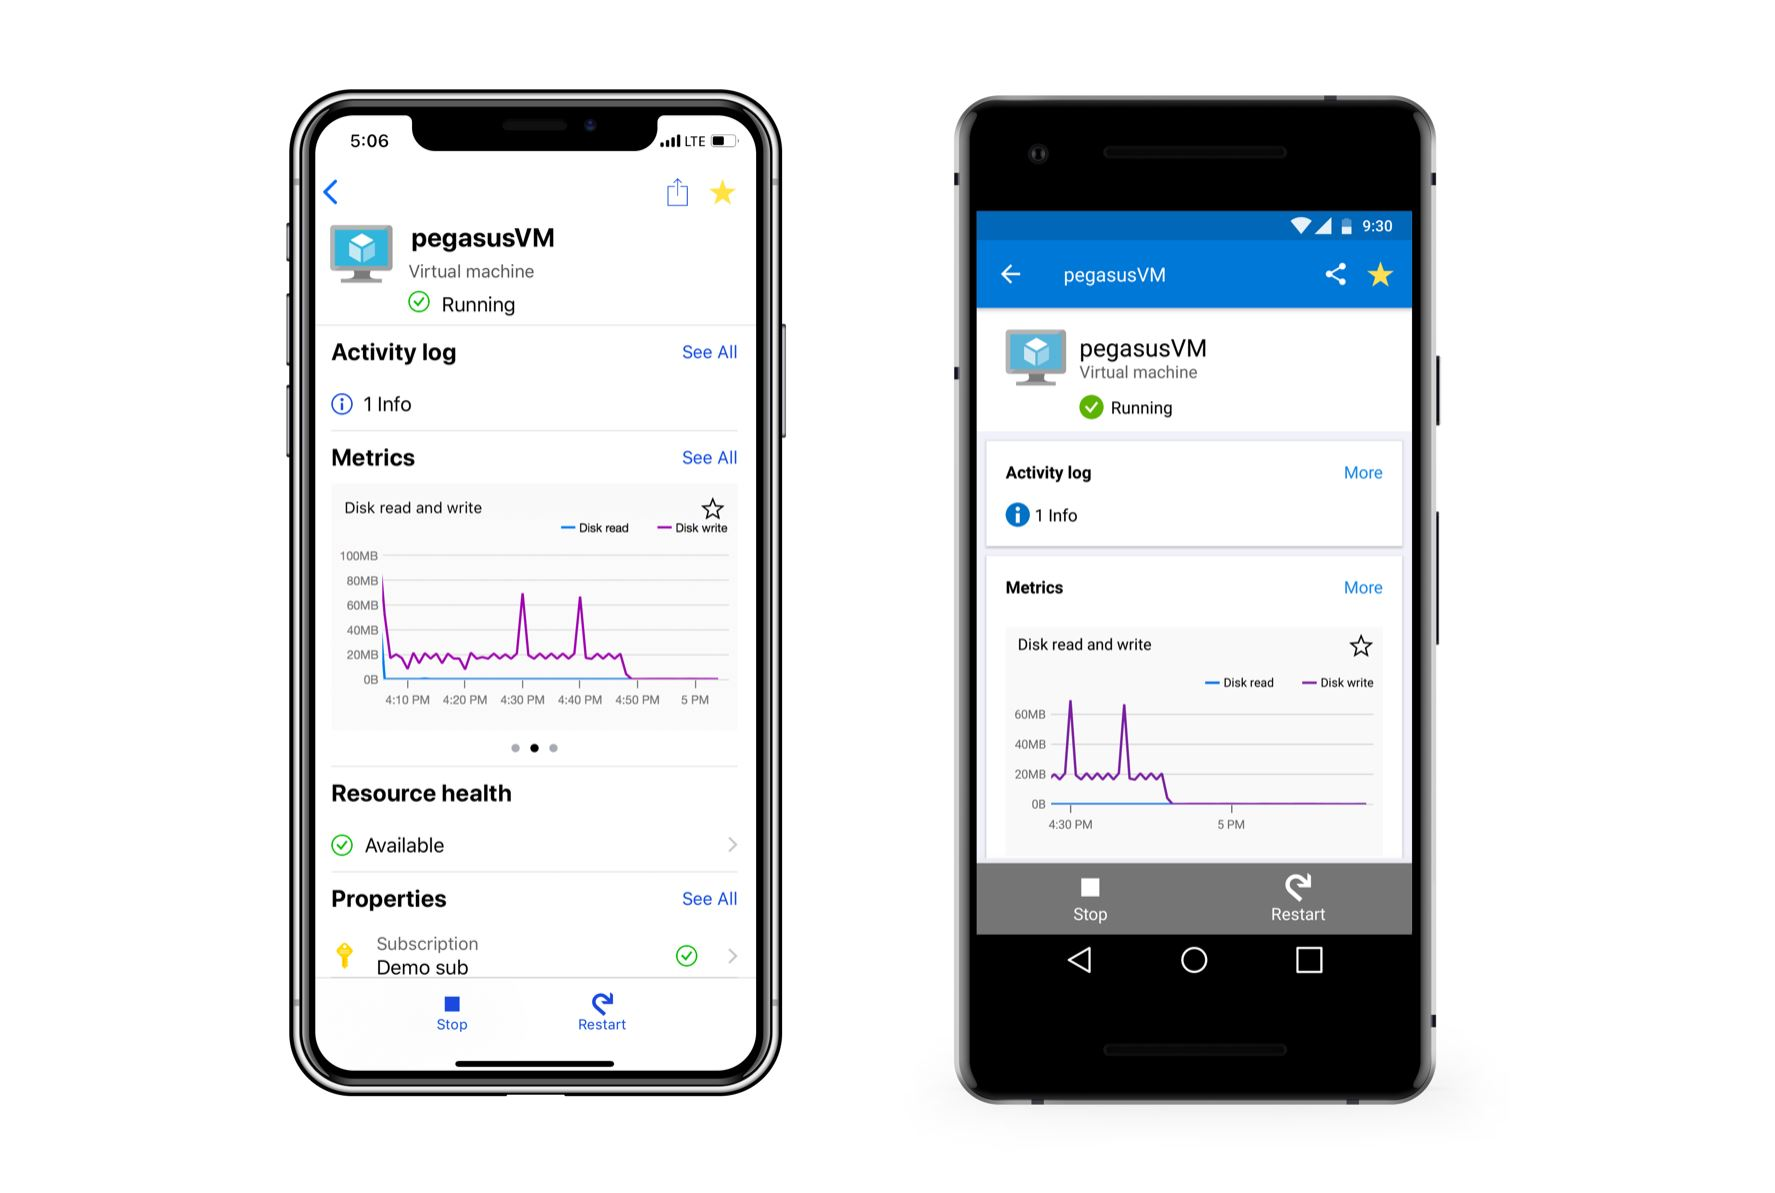 Microsoft releases Azure mobile app for iOS and Android ...